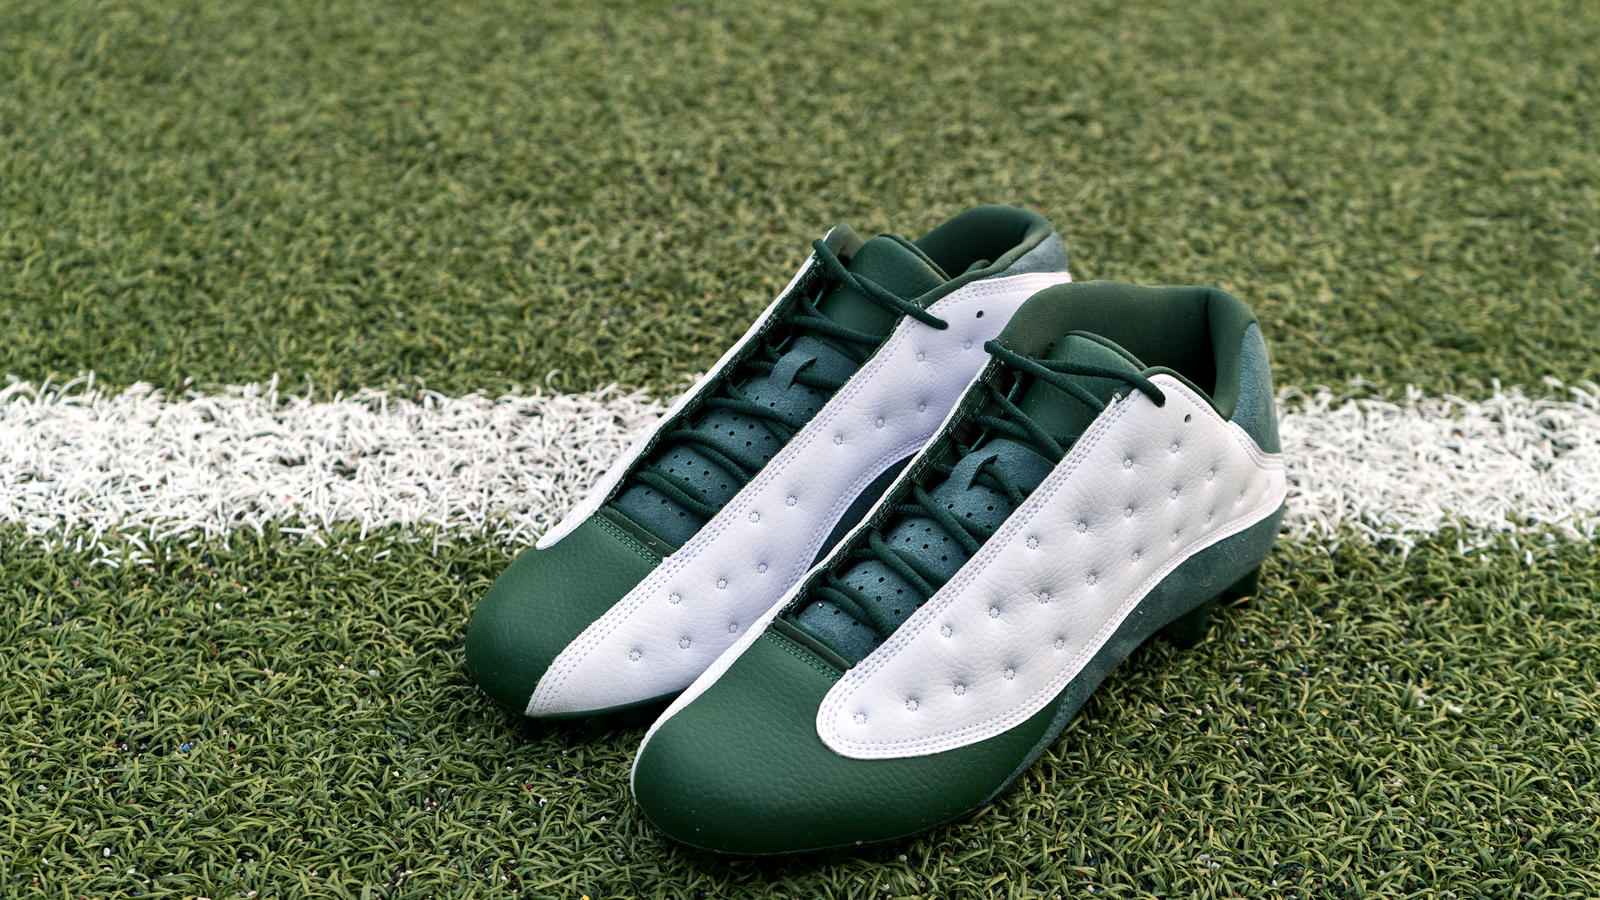 Jordan Brand's Football Roster Debuts New Air Jordan XIII PE Cleats 8